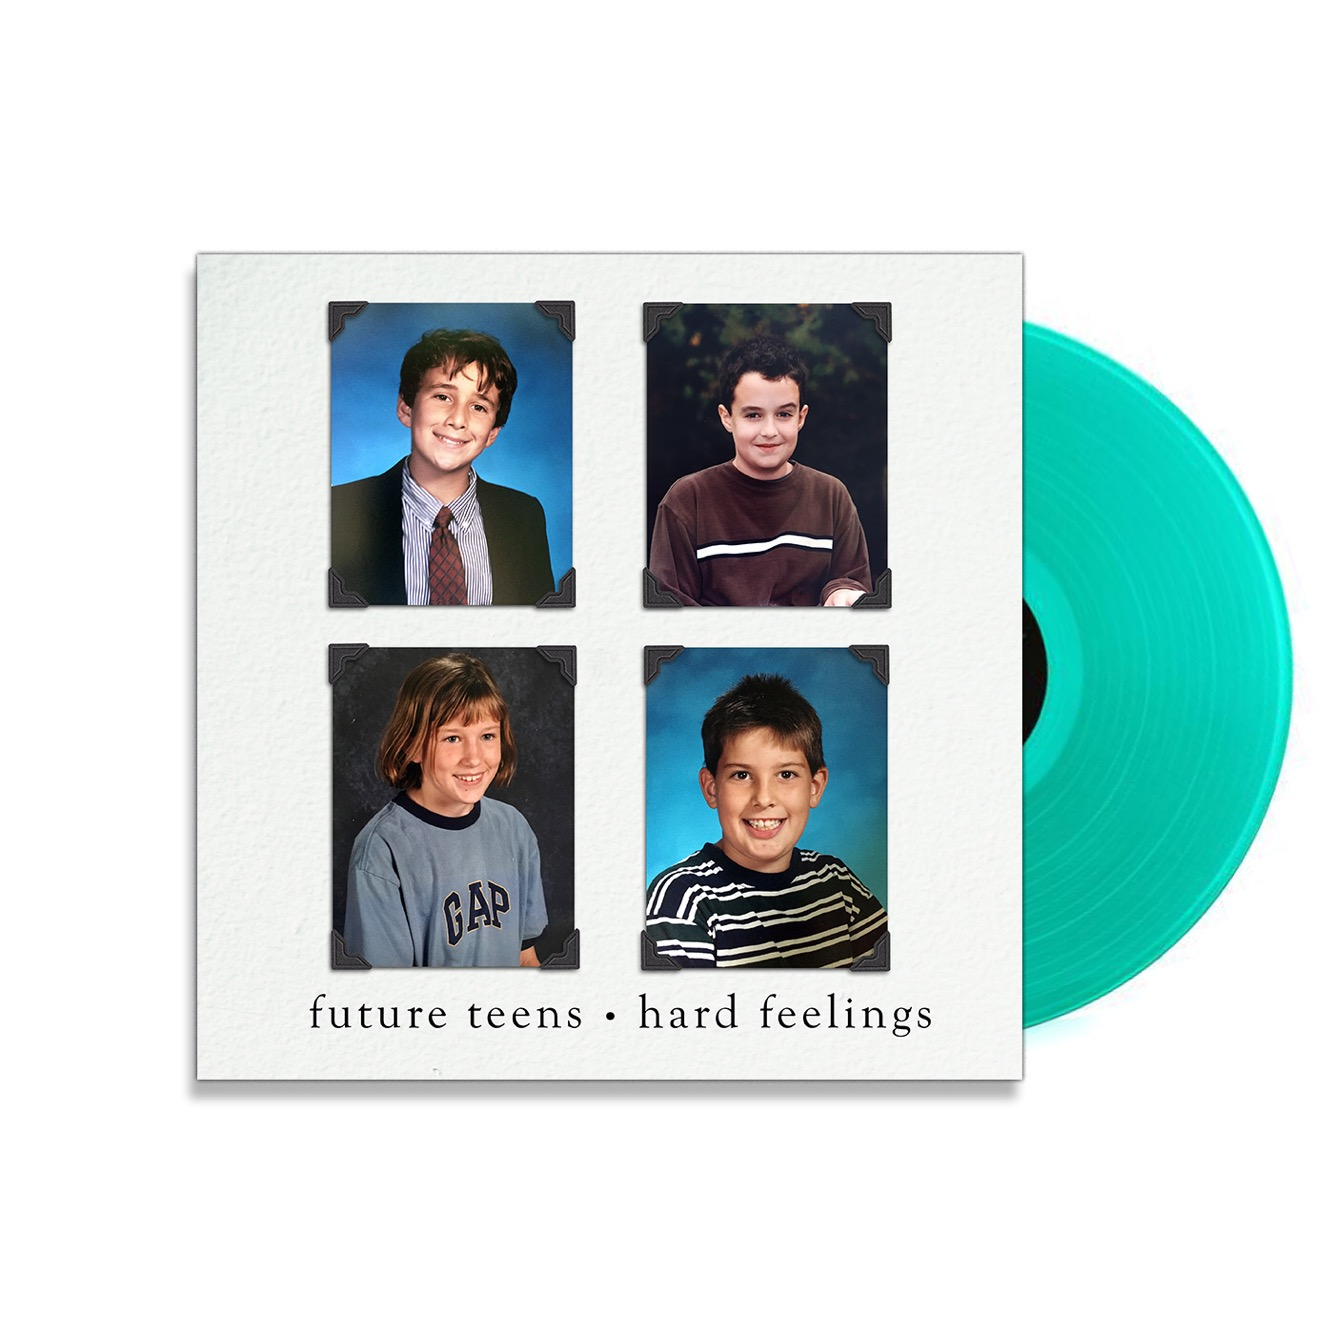 Hard Feelings  Vinyl Pressing Available through  Take This To Heart Records  / Co-released with Pine Box Records